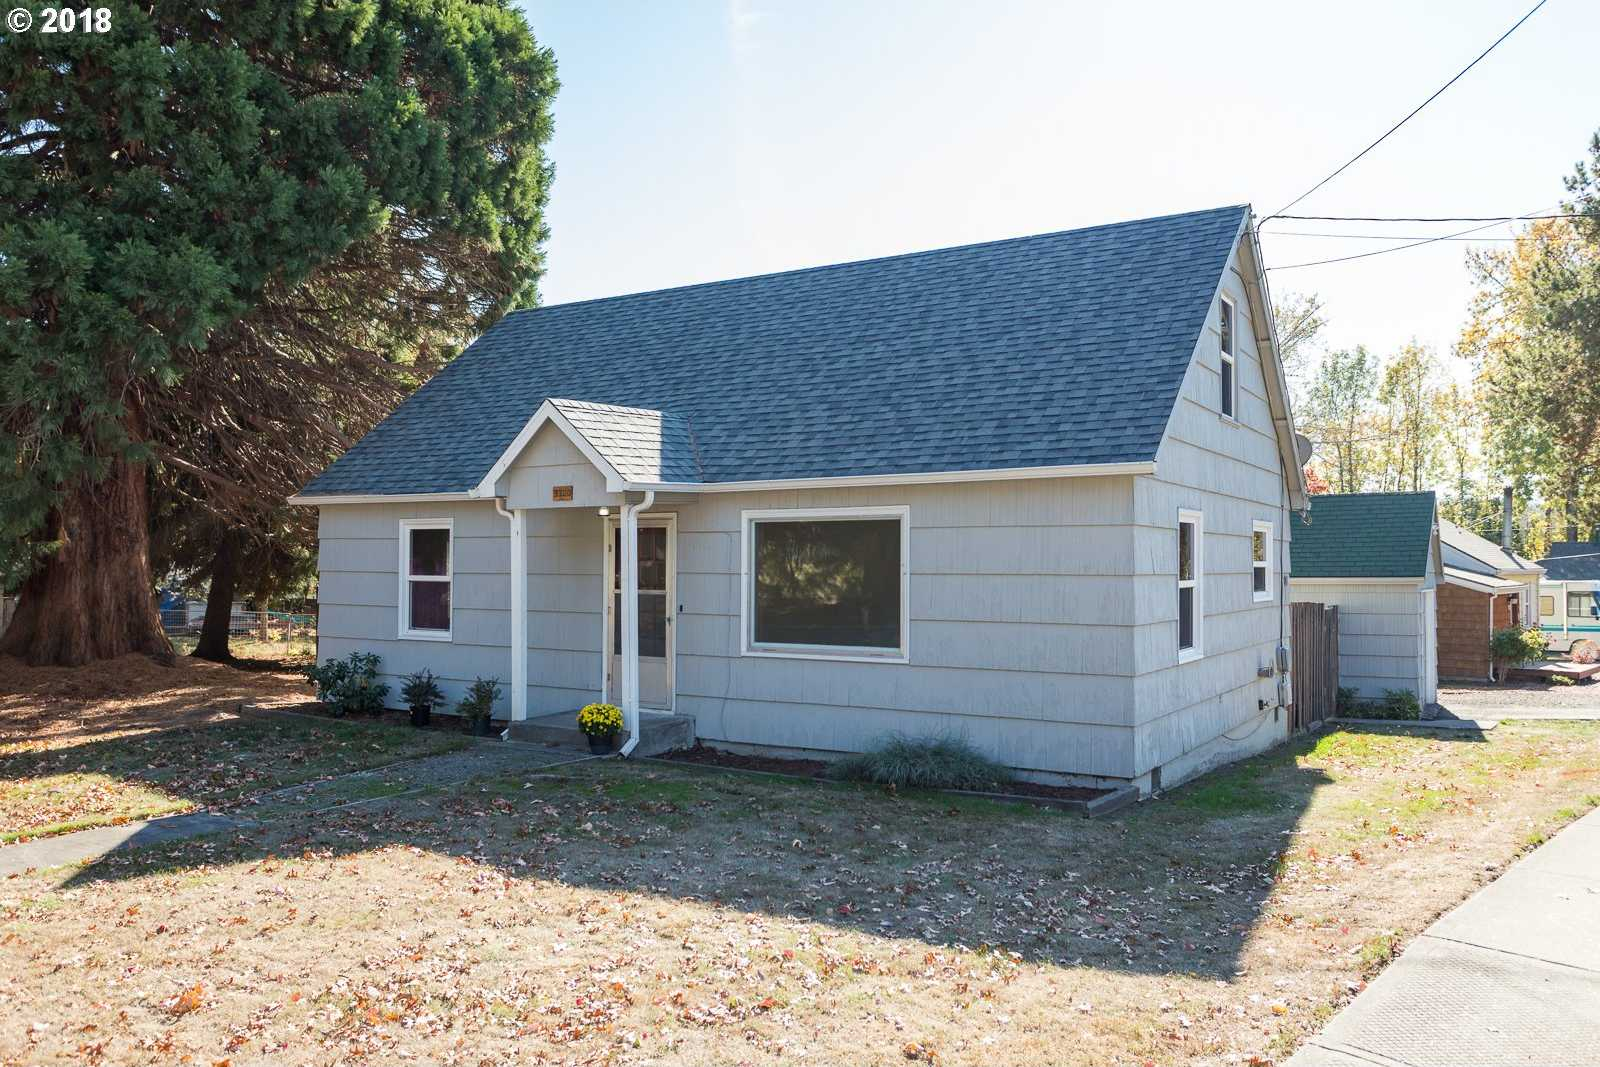 $299,950 - 2Br/1Ba -  for Sale in Downtown Tigard, Tigard